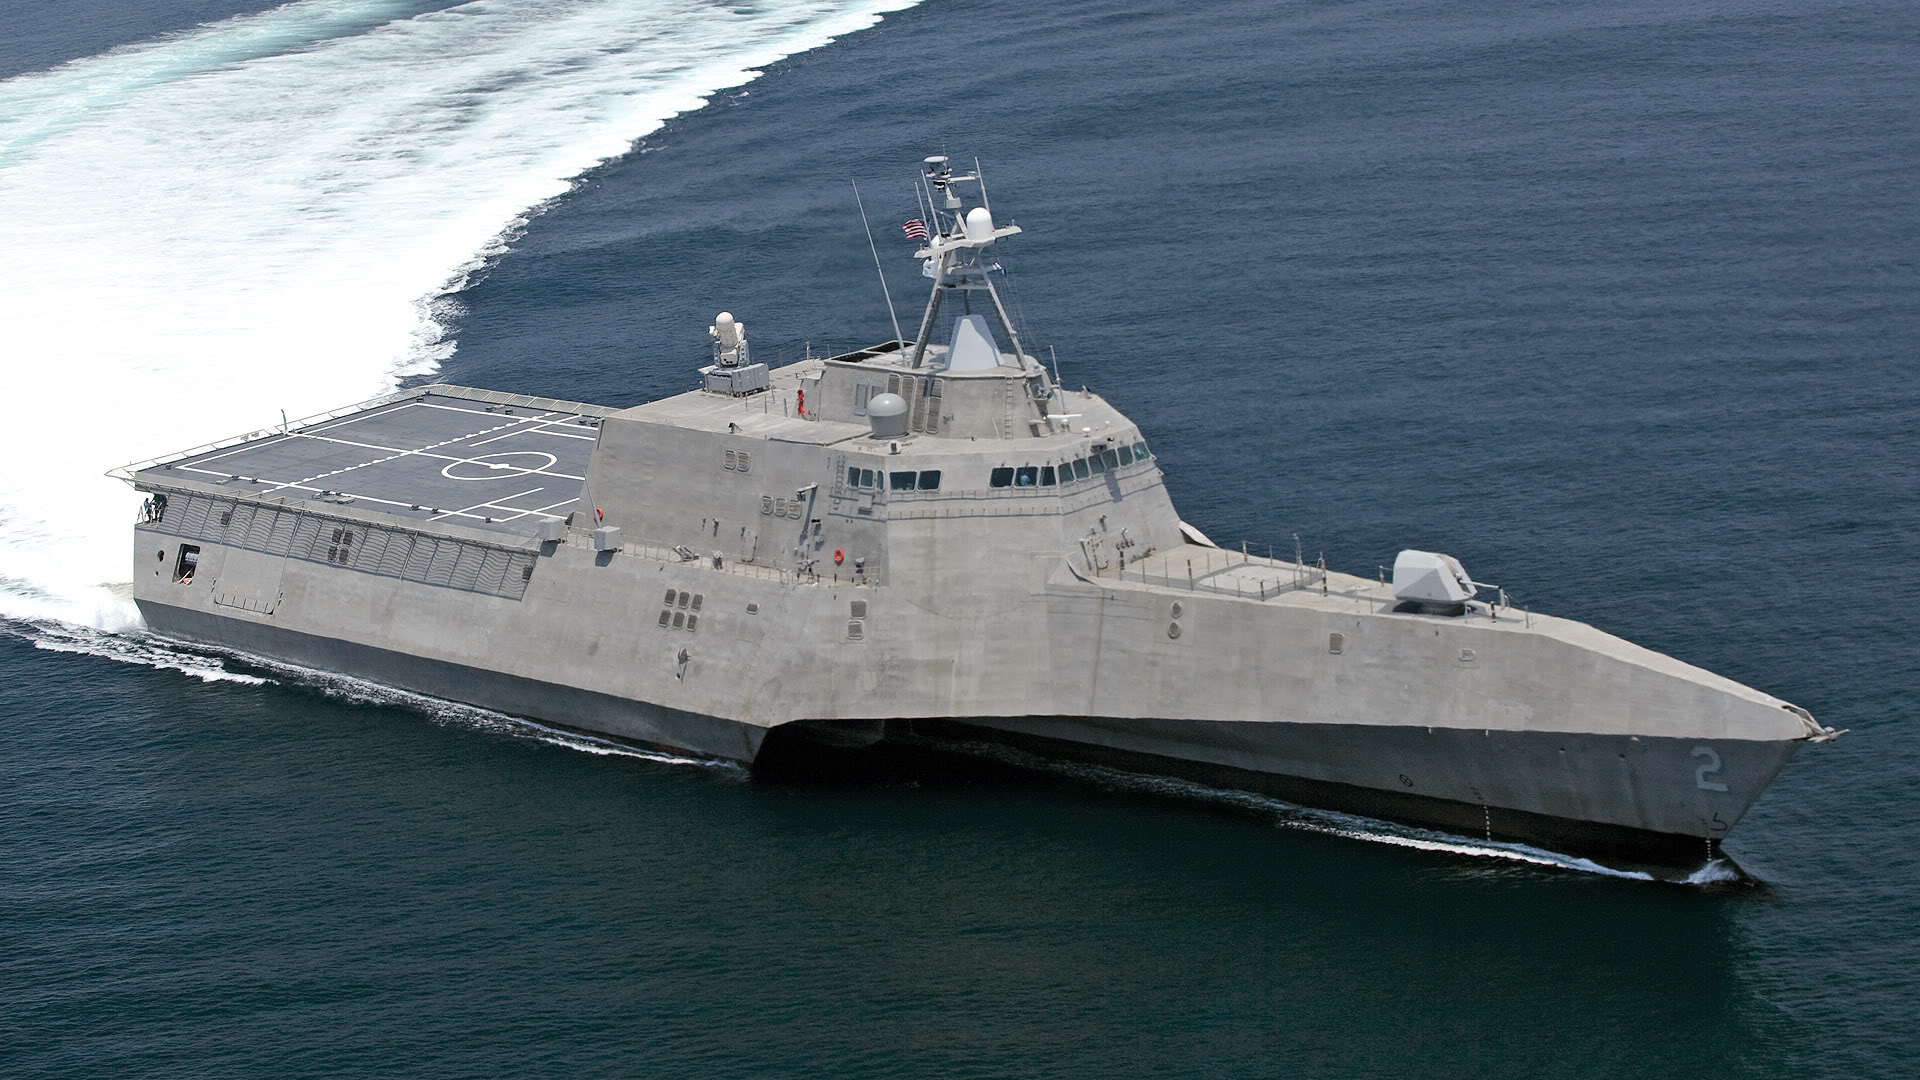 Uss Independence wallpaper   39775 1920x1080